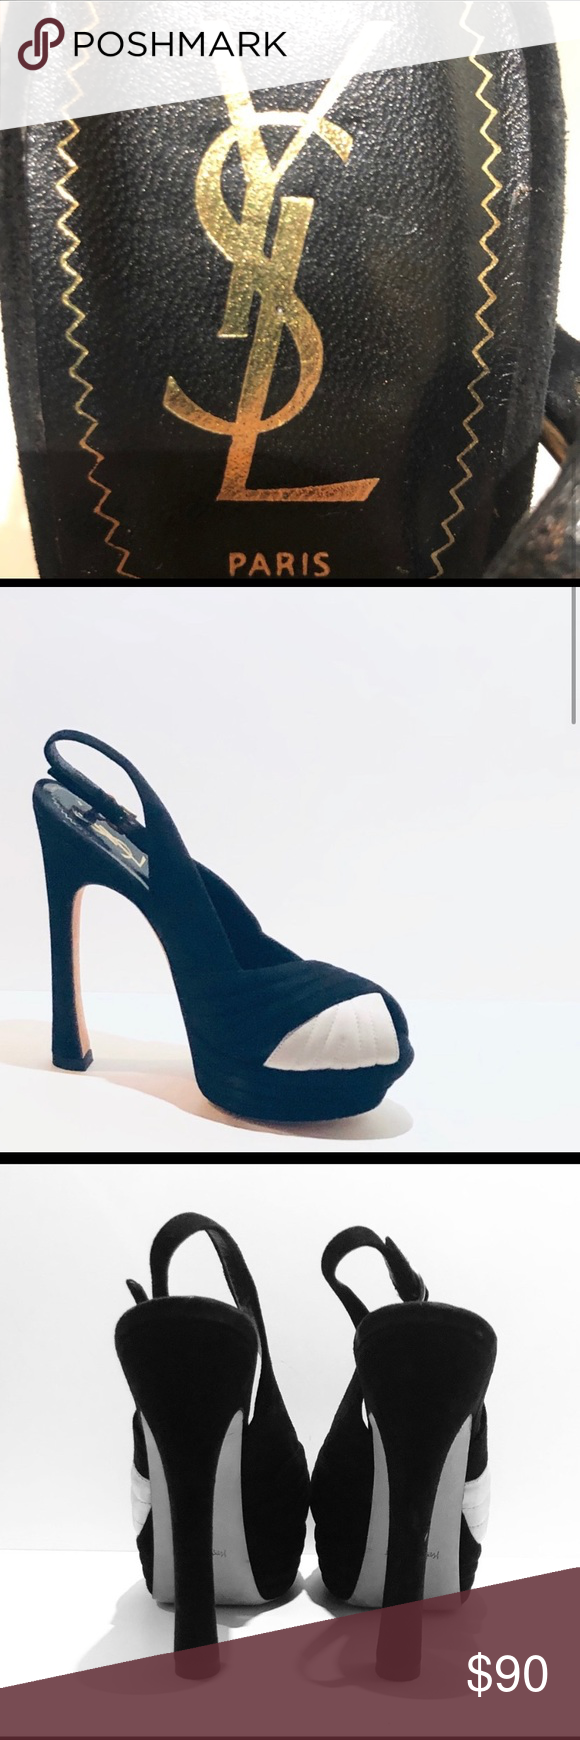 used ysl shoes